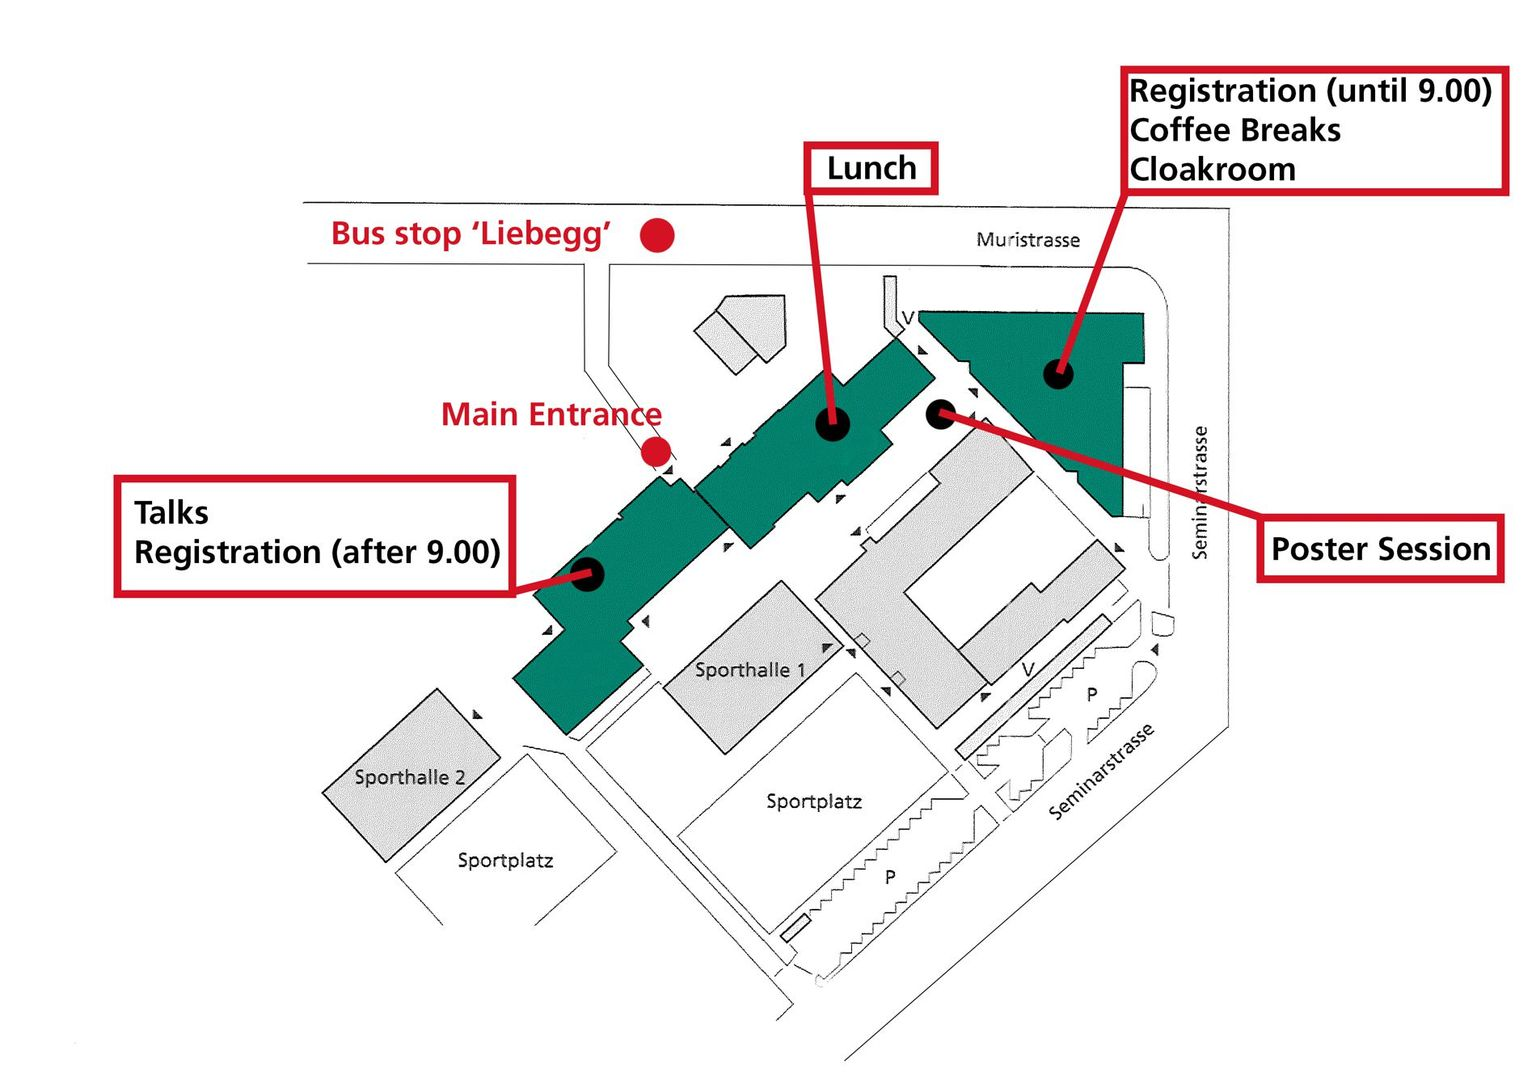 19th Swiss Global Change Day: Site plan Campus Muristalden